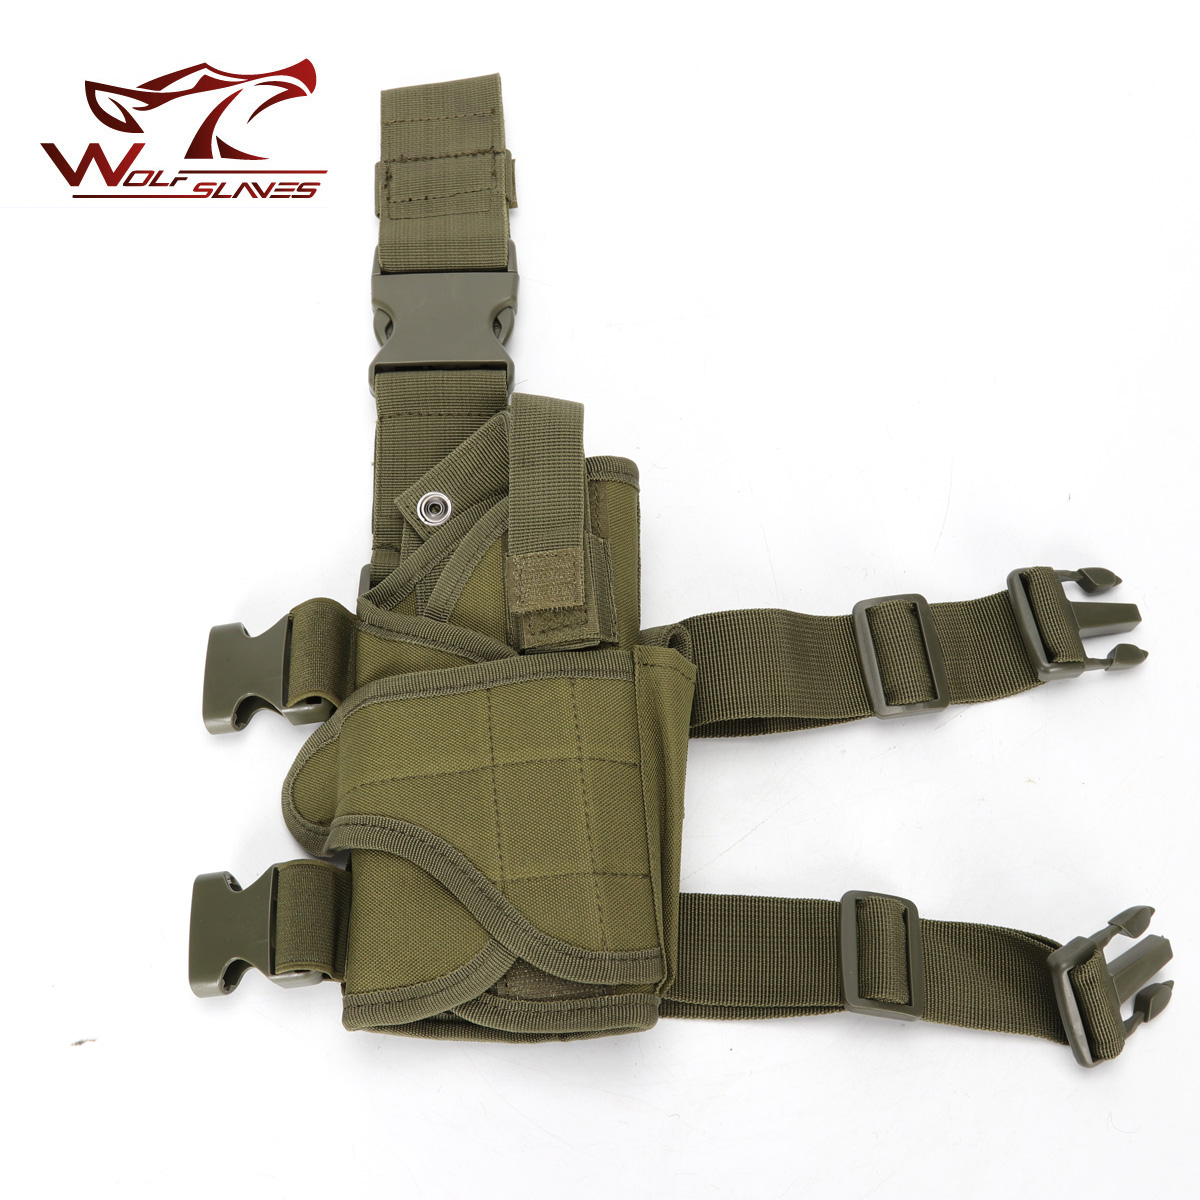 Universal Tactical Pistol Bag Drop Leg Thigh Holster Airsoft Mag Pouch Right Hand Adjustable Pistol Pouch Hunting Accessories